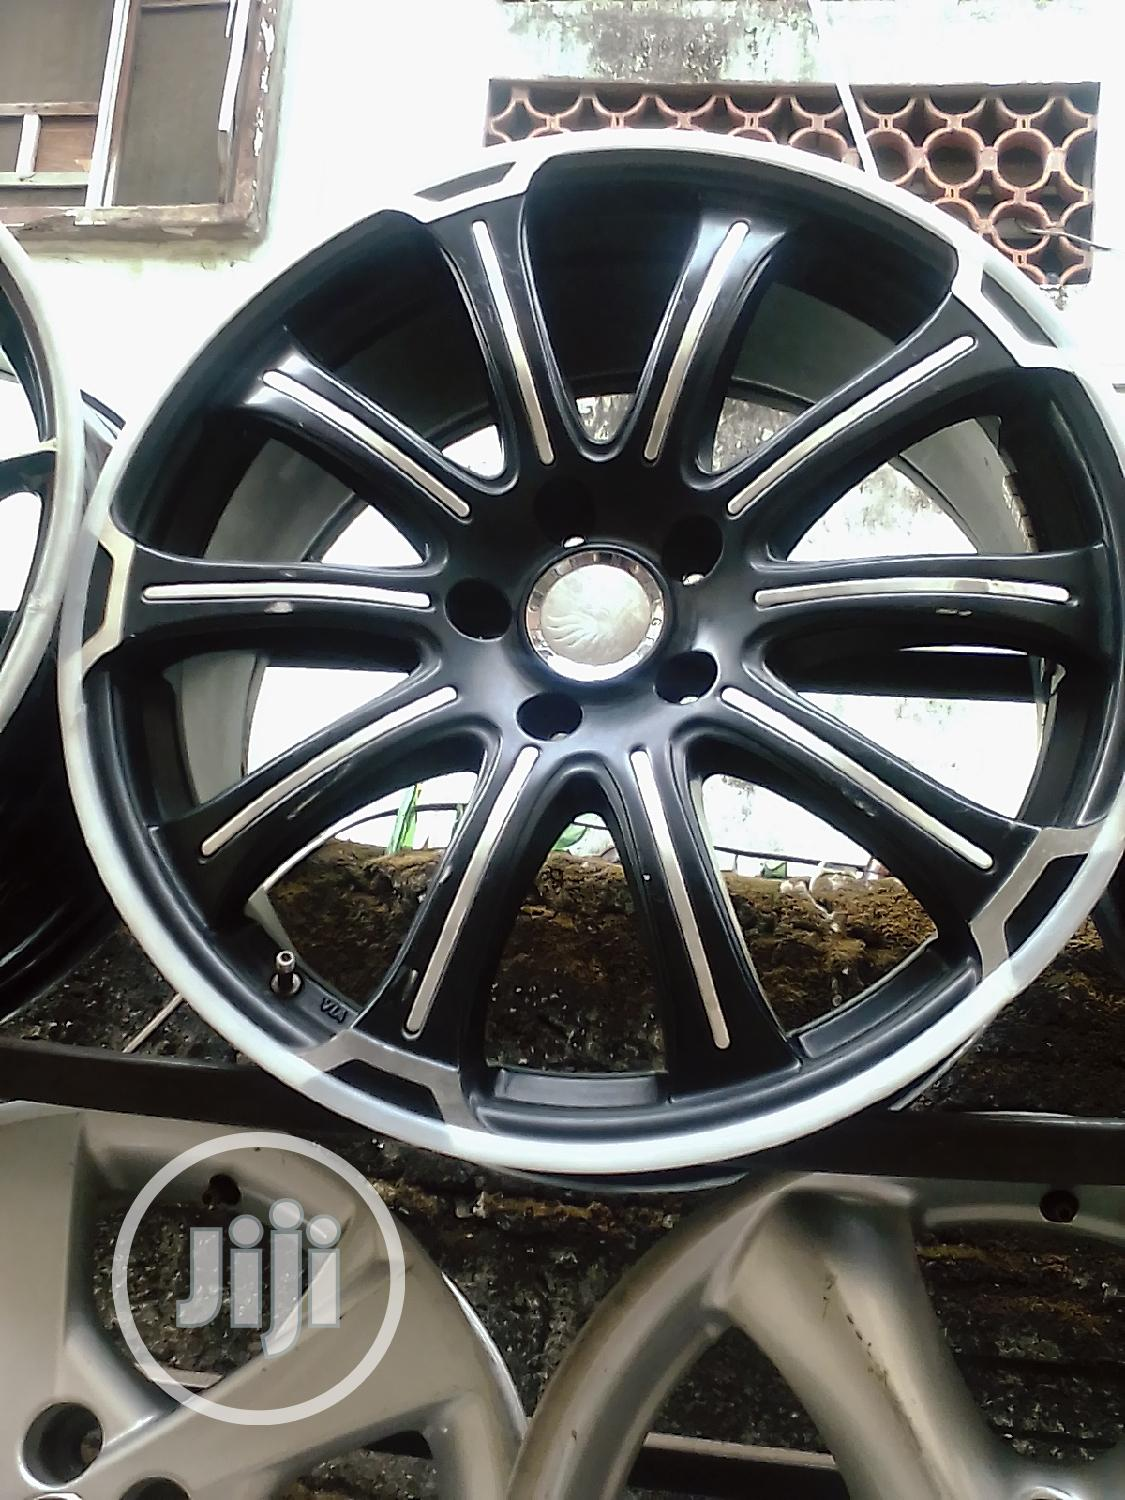 18 Inches Camry, Honda Accord, Lexus Car's